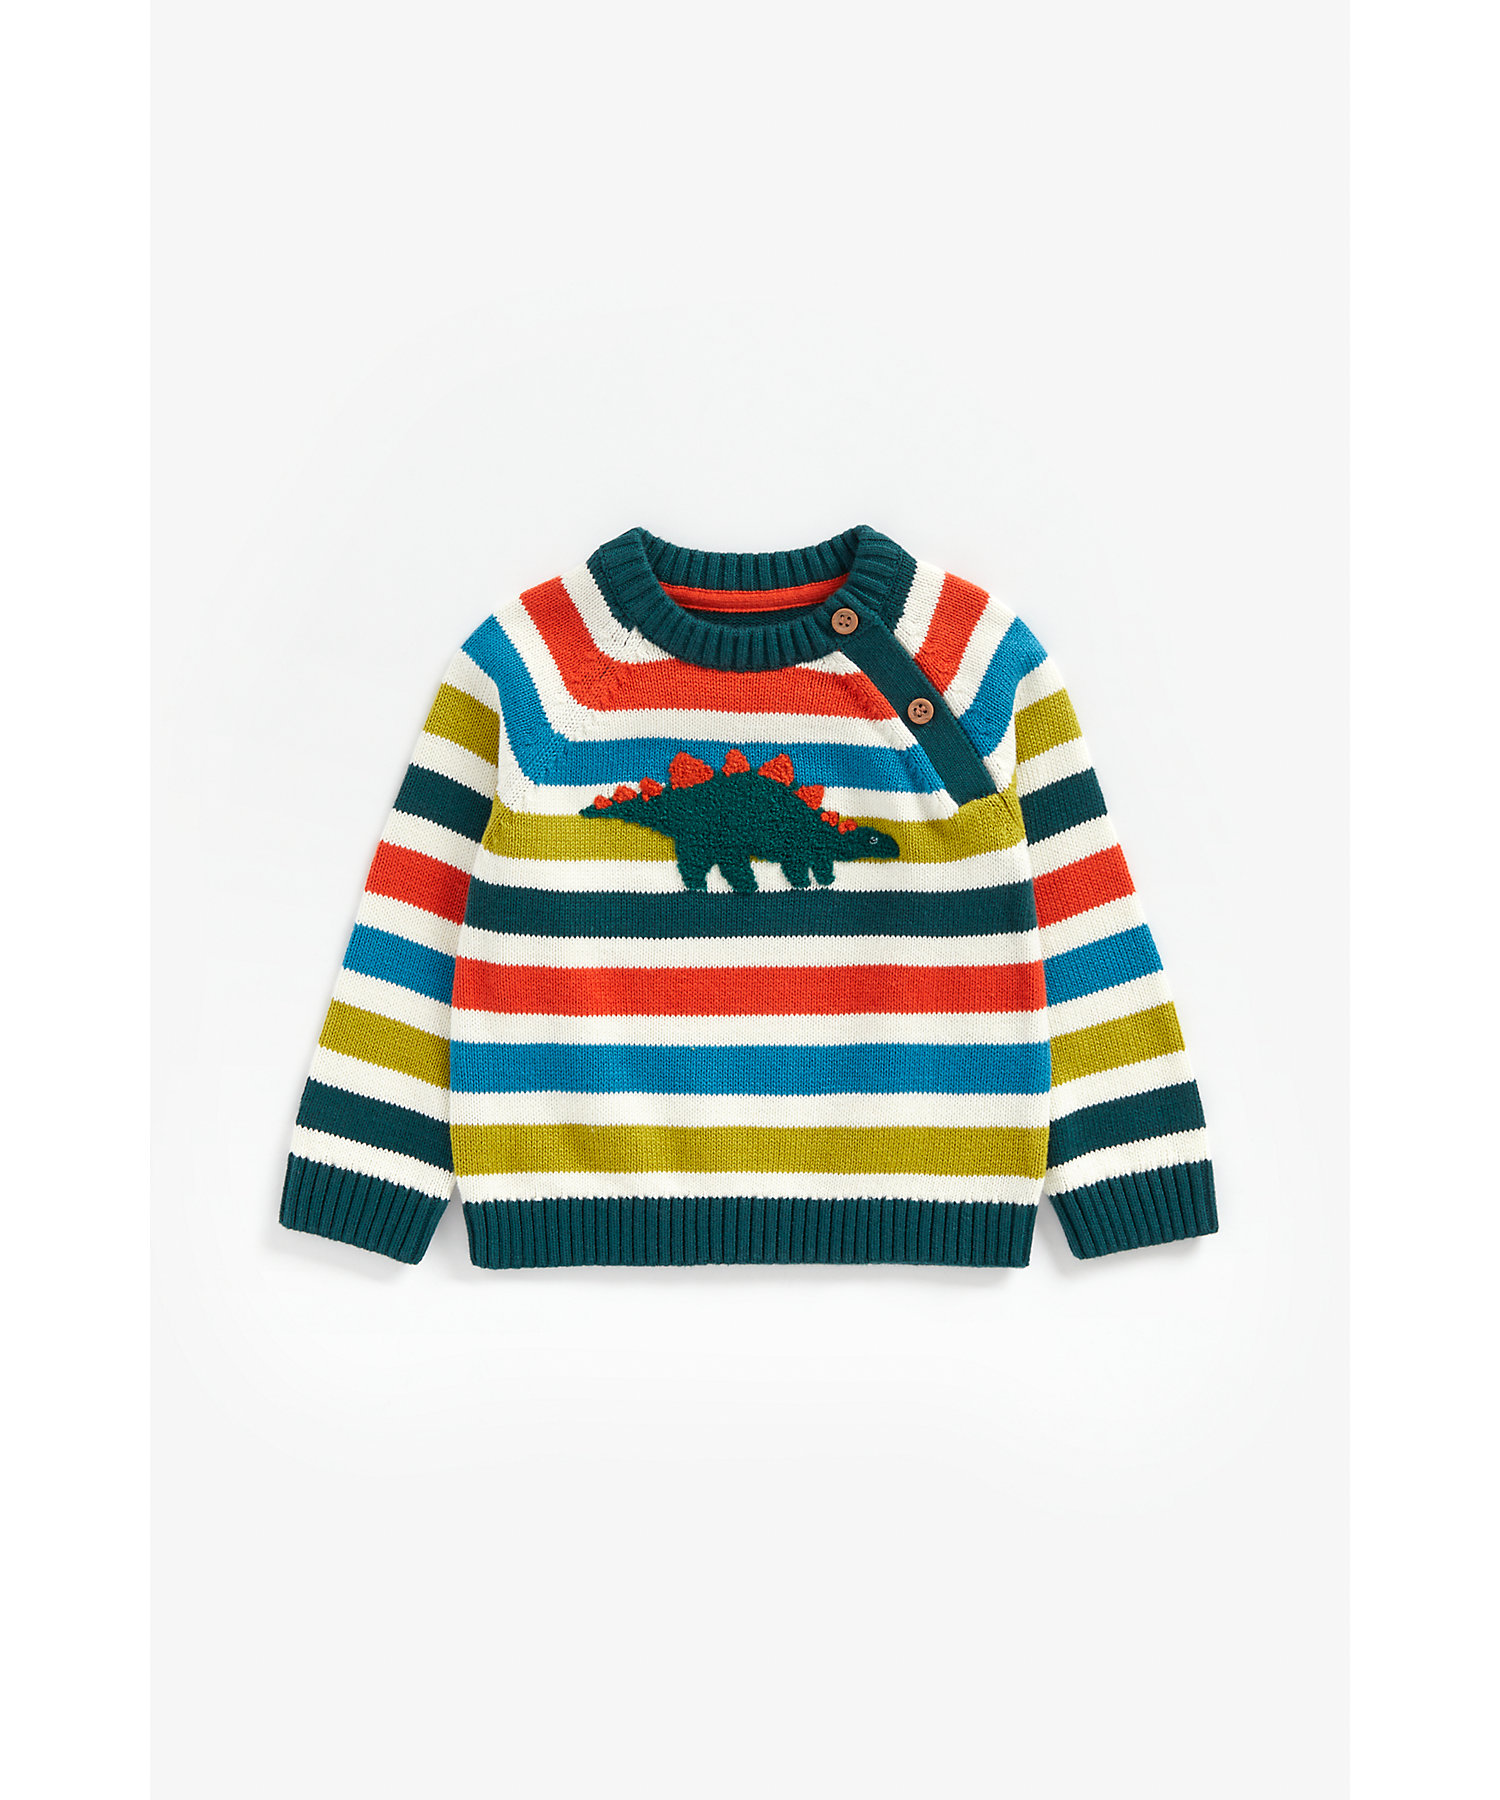 Mothercare   Boys Full Sleeves Sweater Textured Dino Design - Multicolor